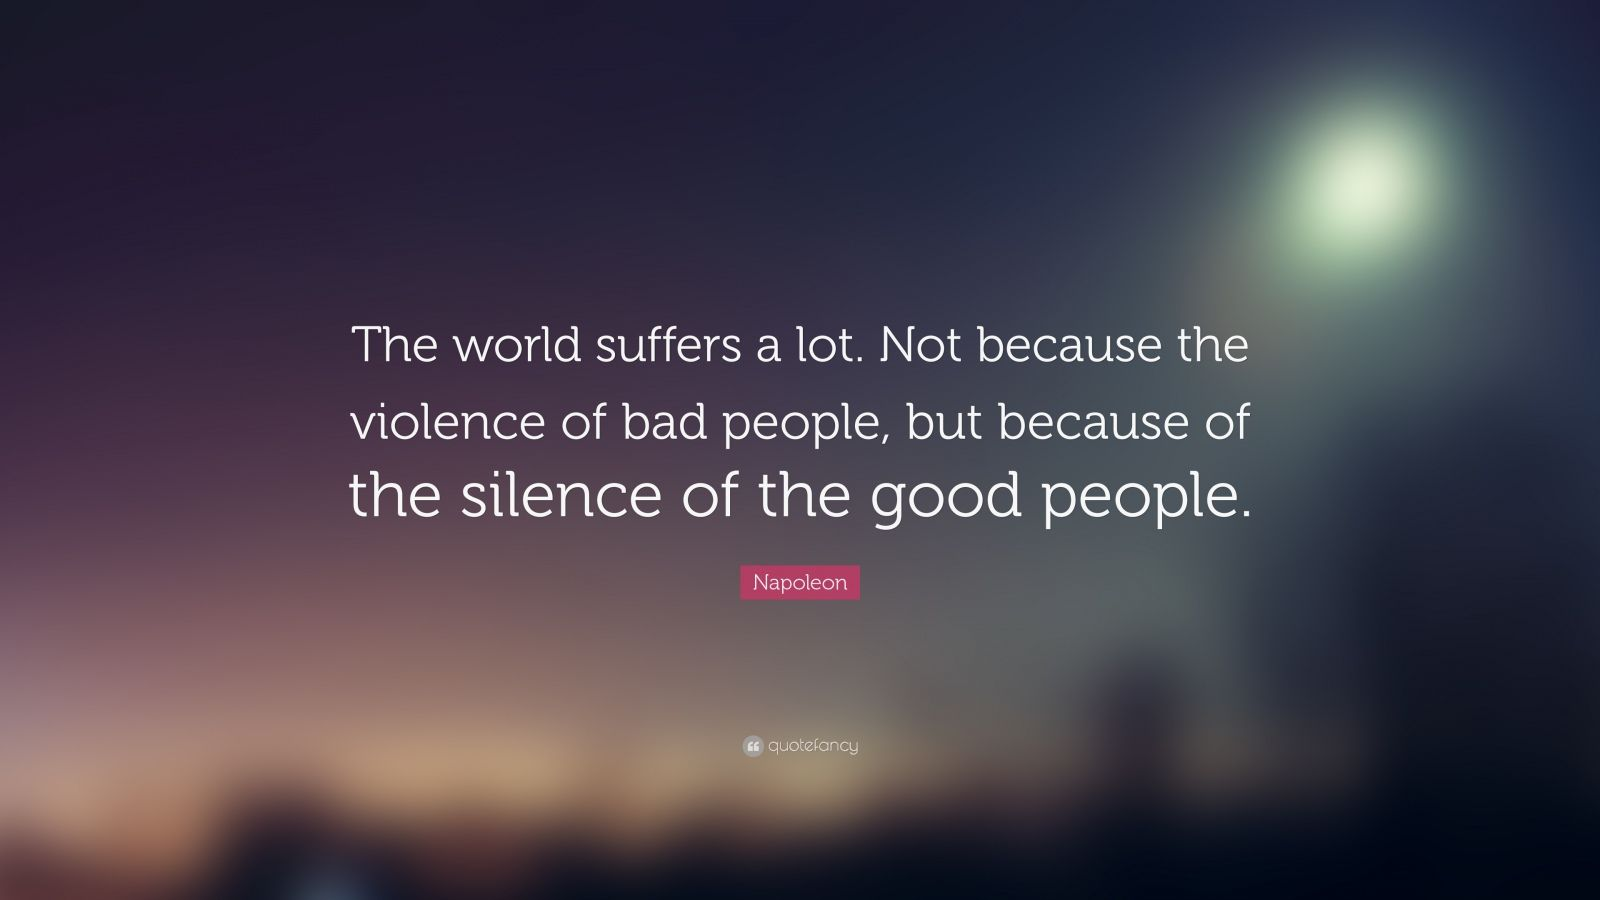 Theodore Roosevelt Wallpaper Quote Napoleon Quote The World Suffers A Lot Not Because The